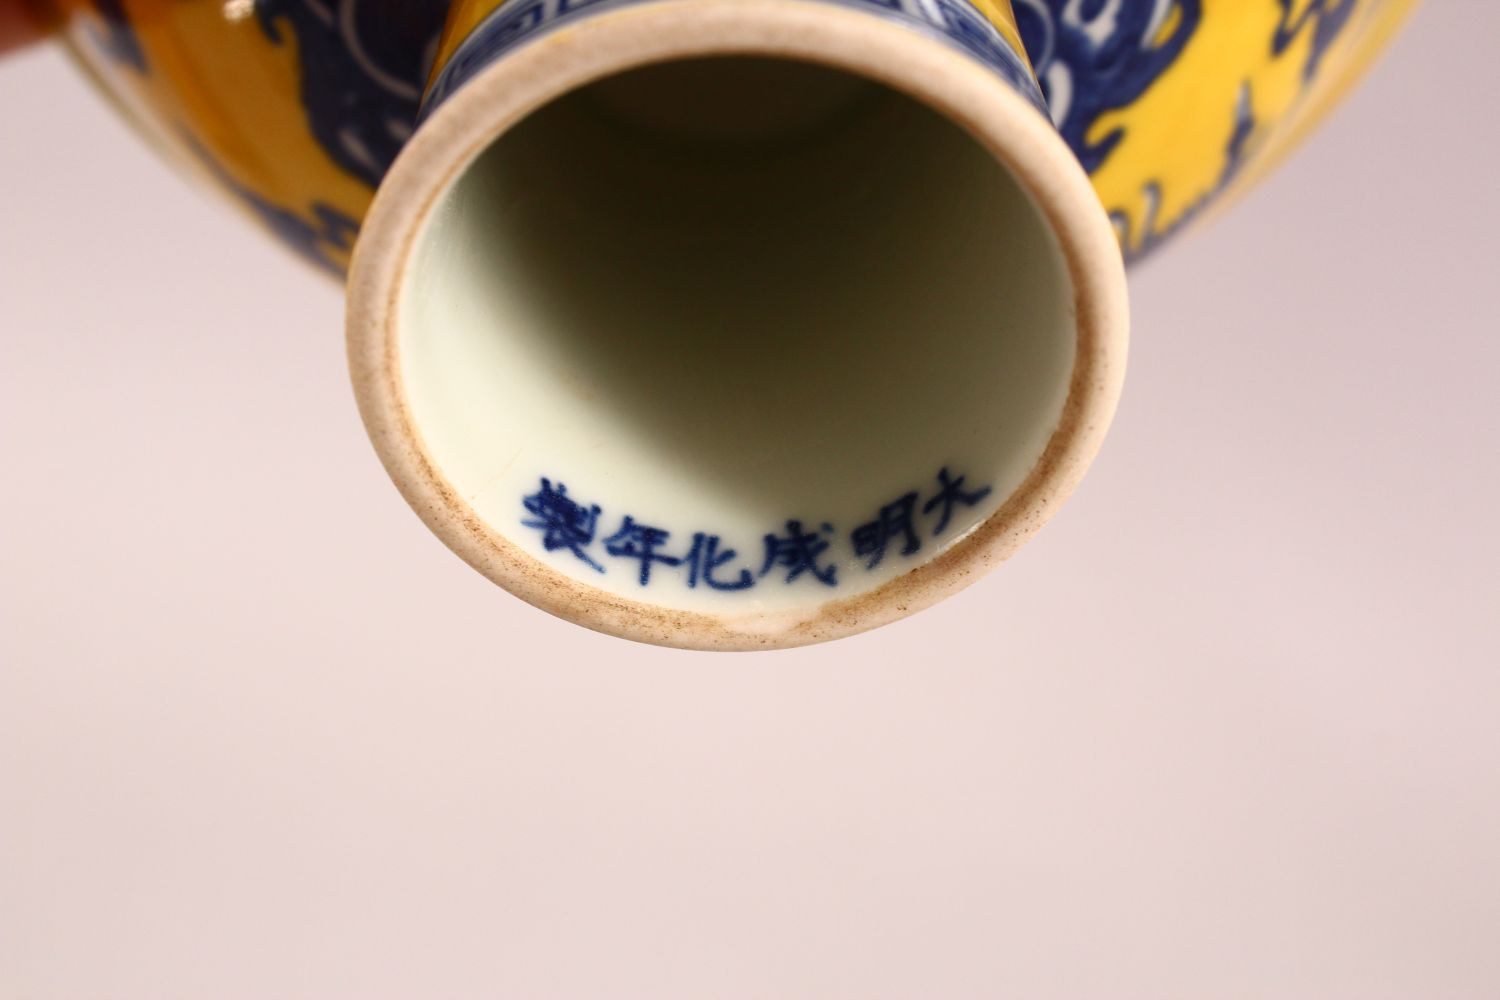 A CHINESE YELLOW GROUND PORCELAIN STEM CUP, decorated with cranes in flight, the interior of the - Image 6 of 6